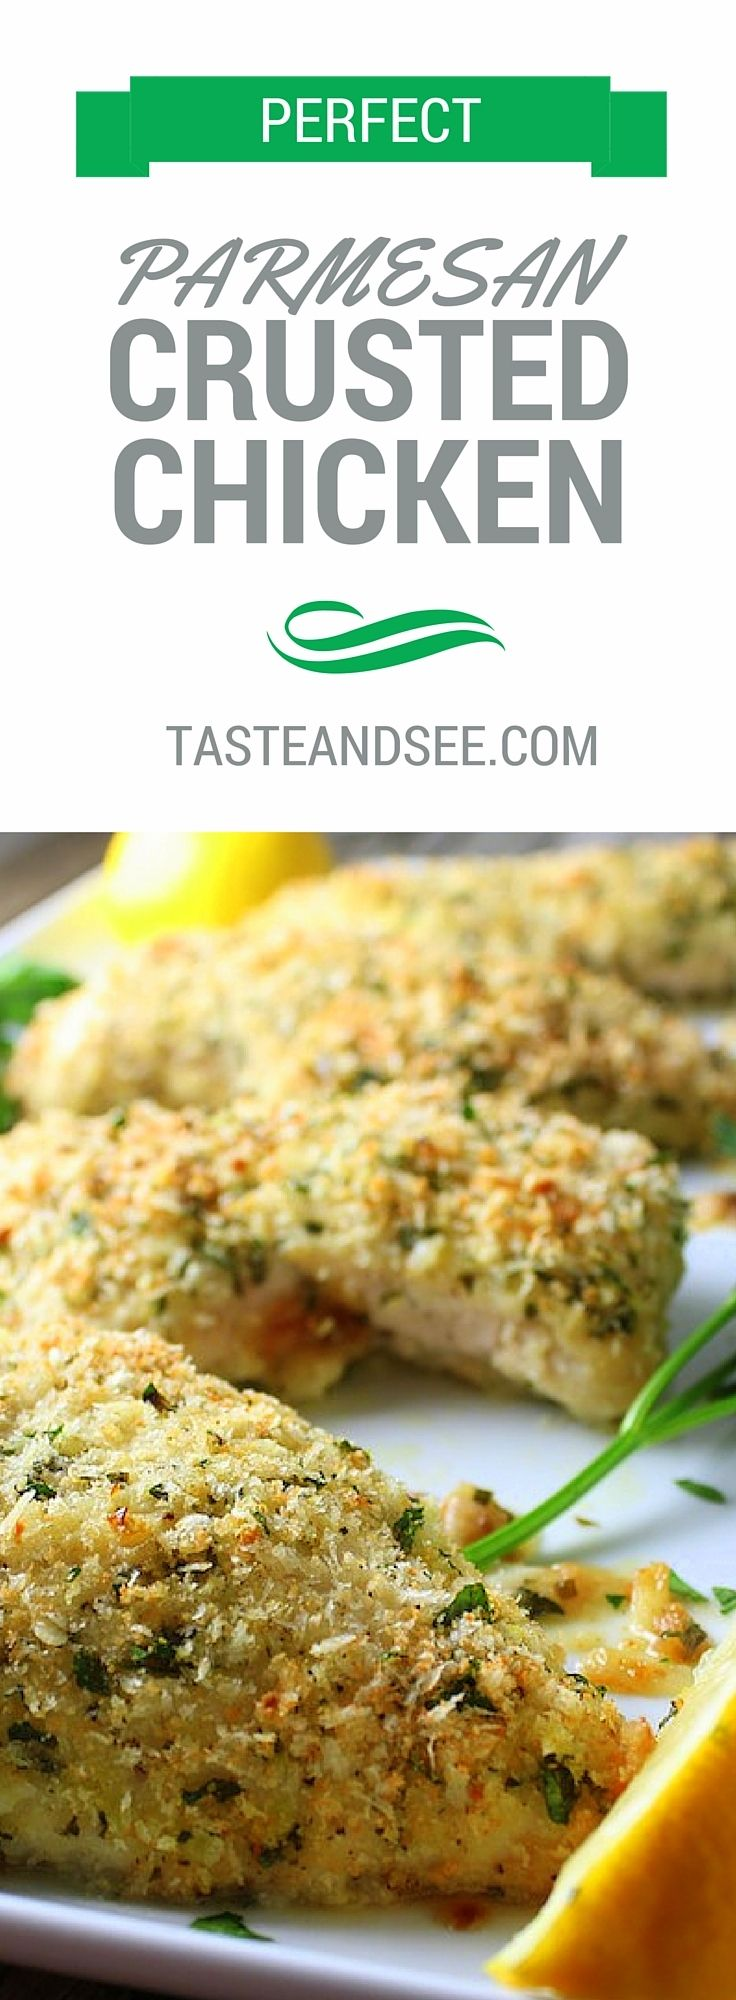 Parmesan Crusted Chicken Recipe Parmesan Crusted